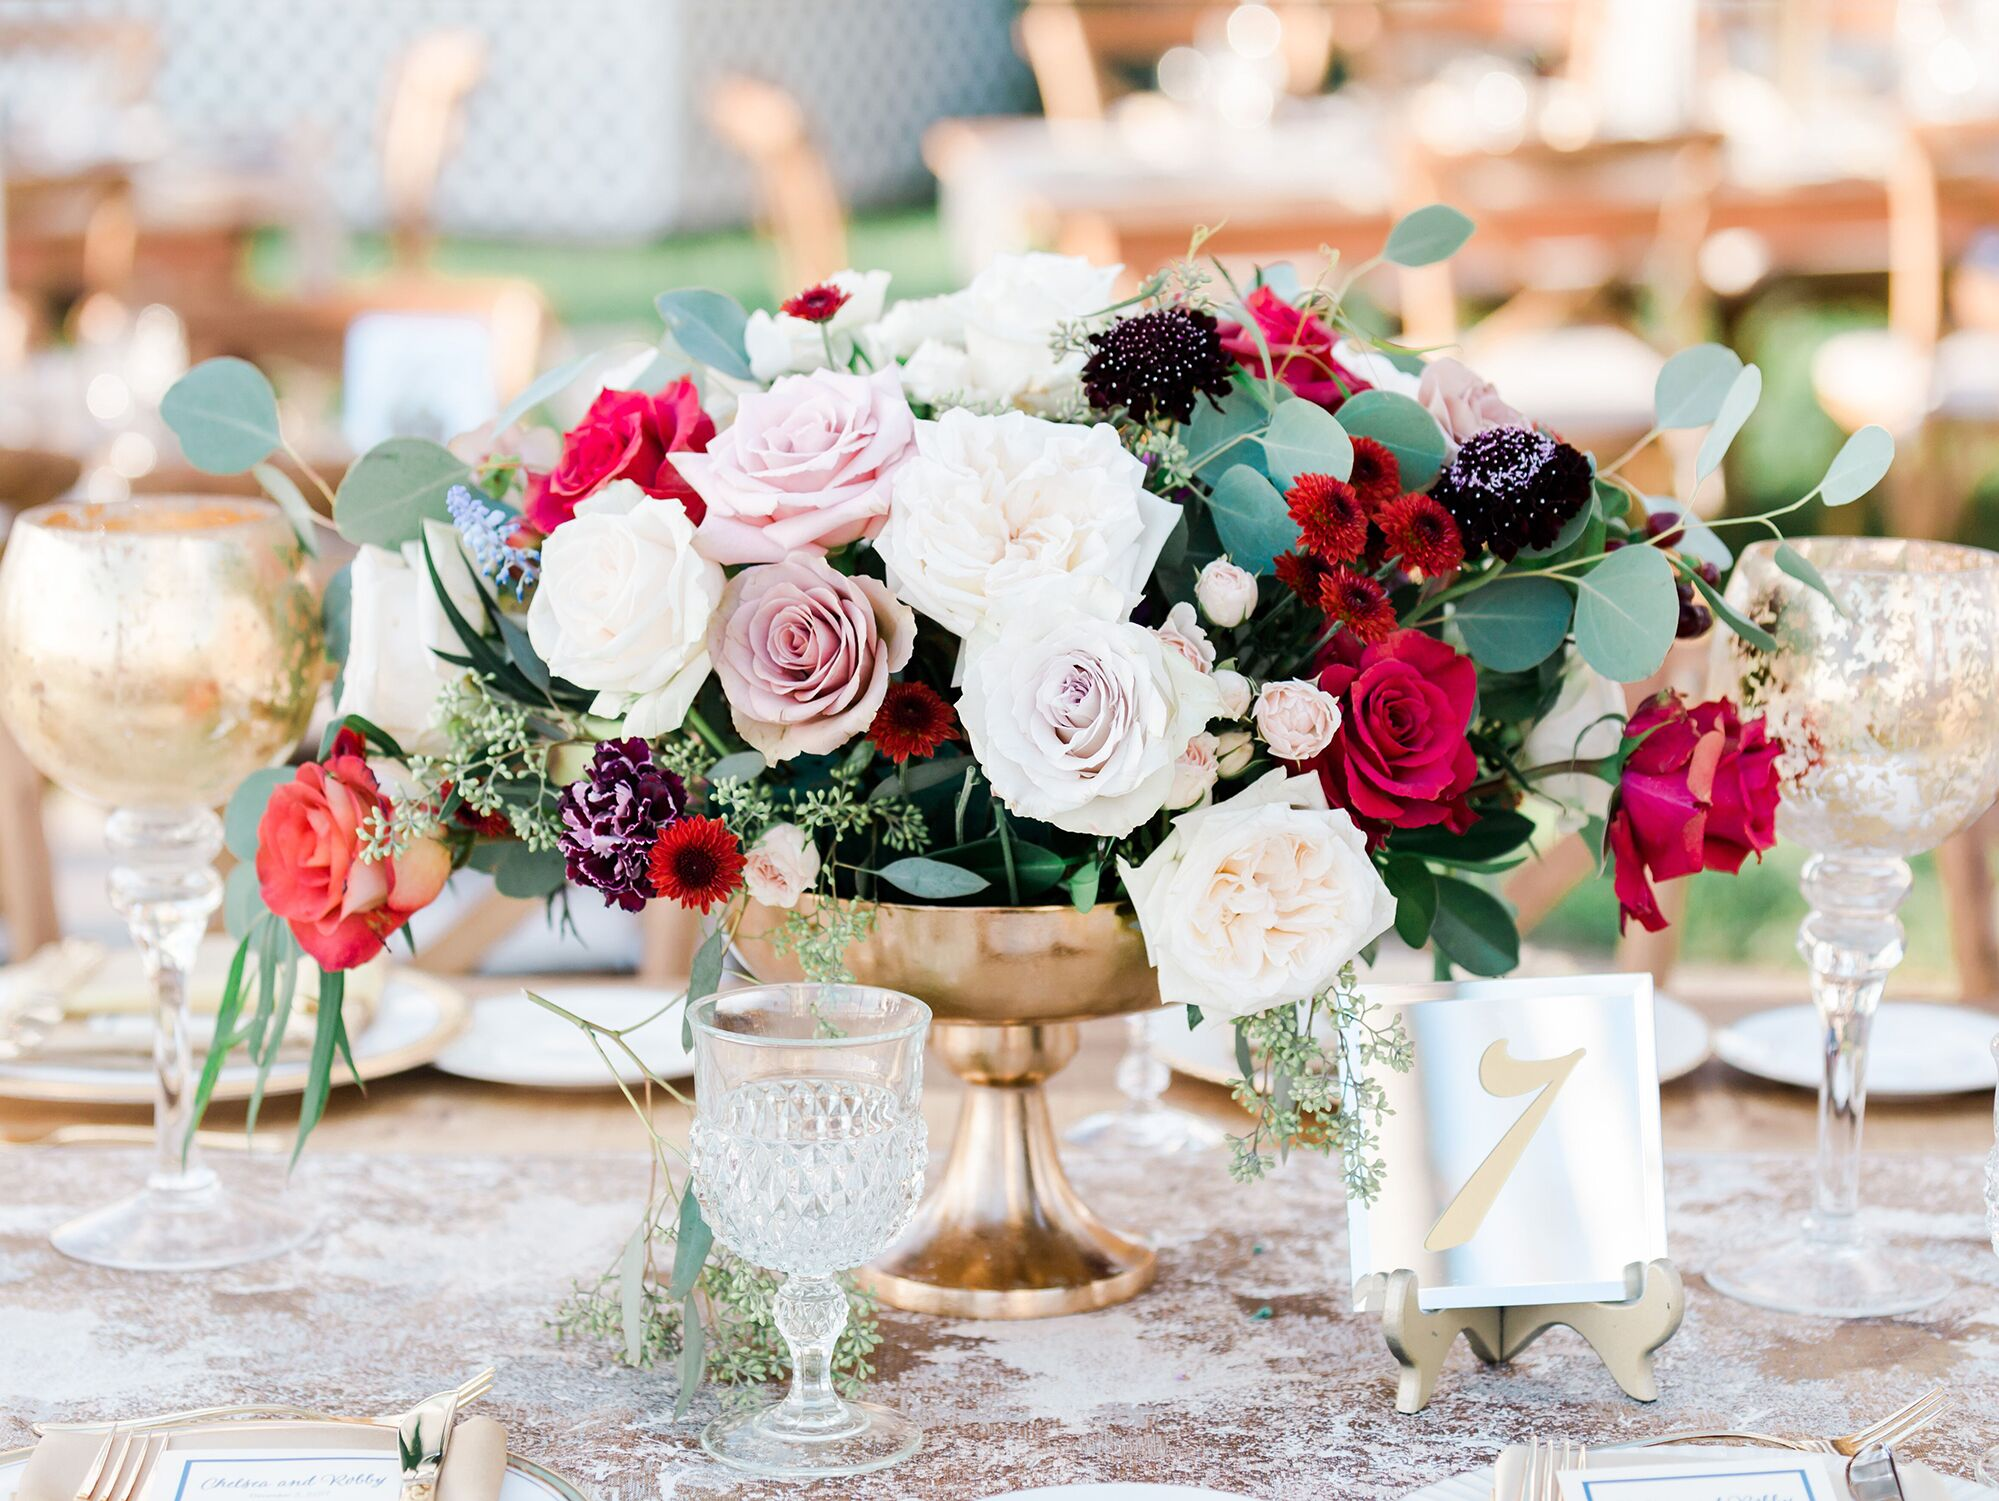 9 Wedding Table Decorations That Tie It All Together